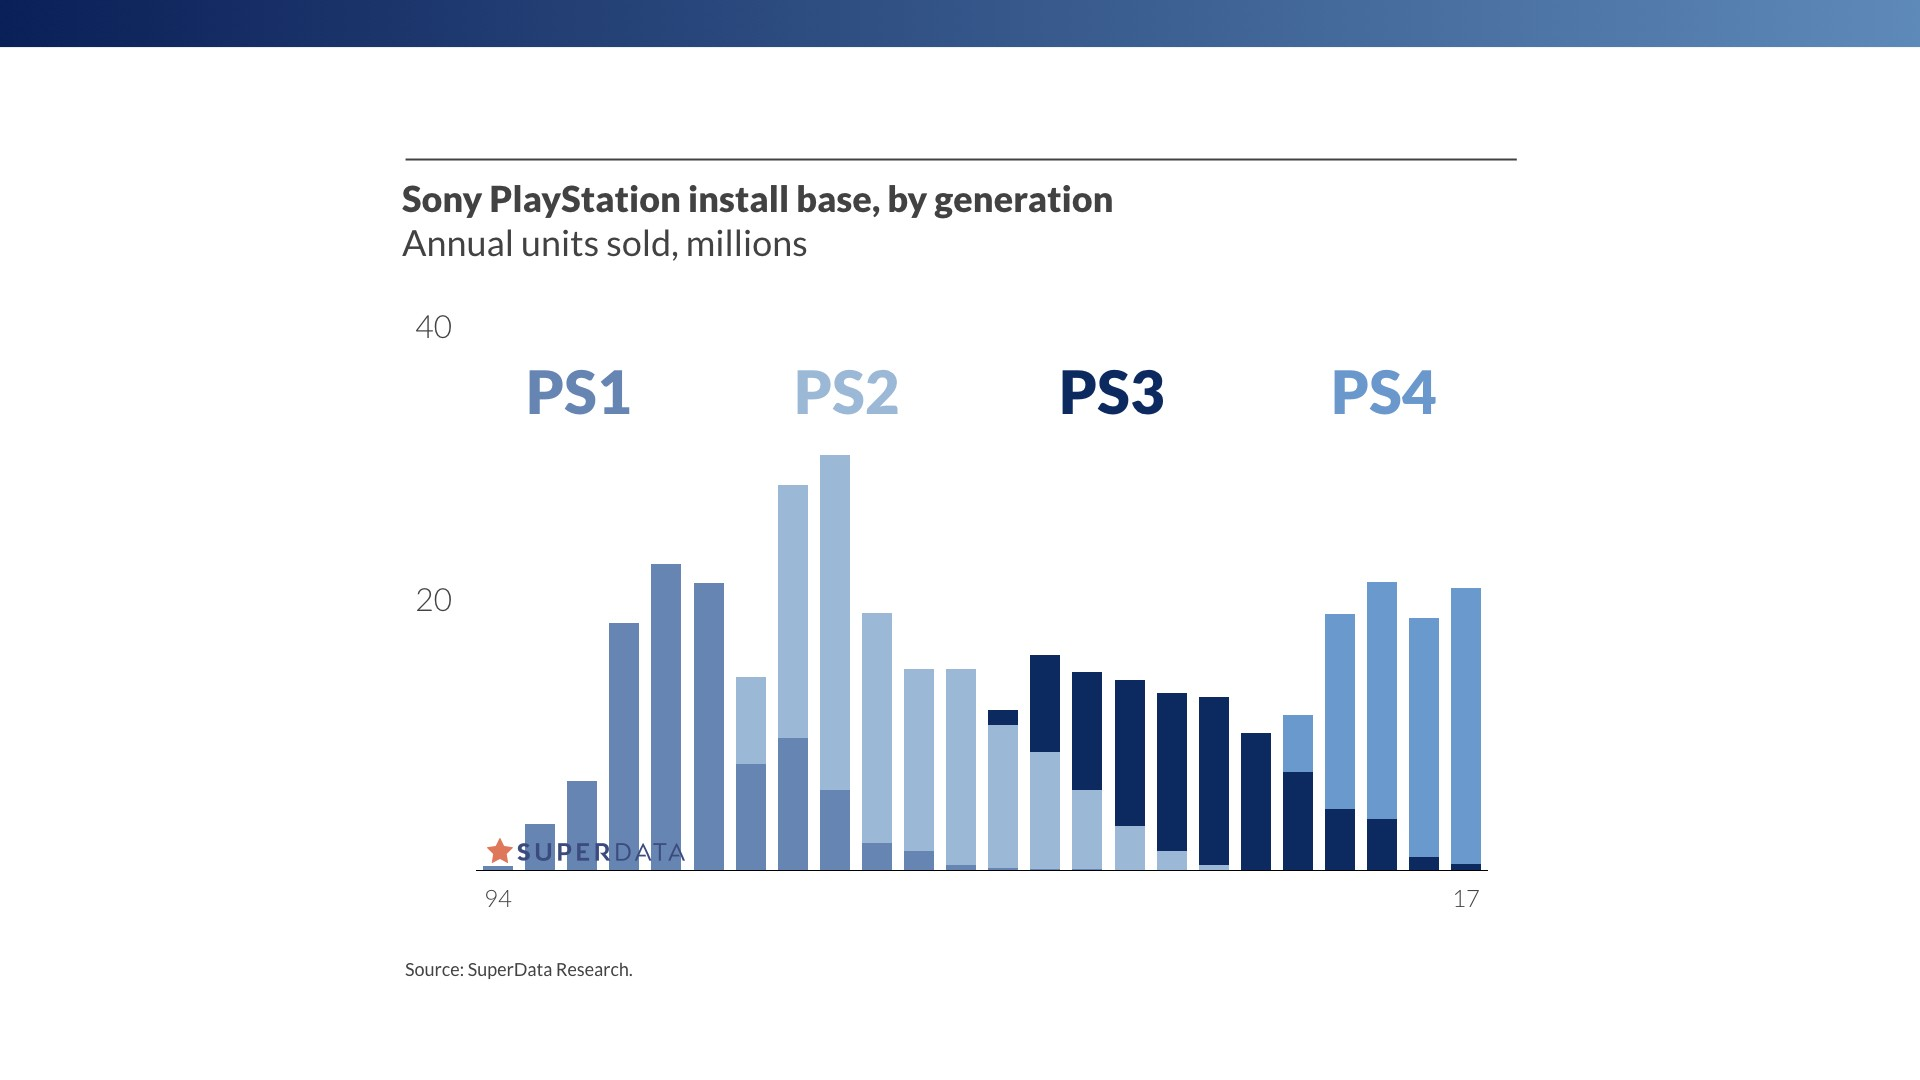 PS4 on par with Sony's best-selling console ever, the PS2